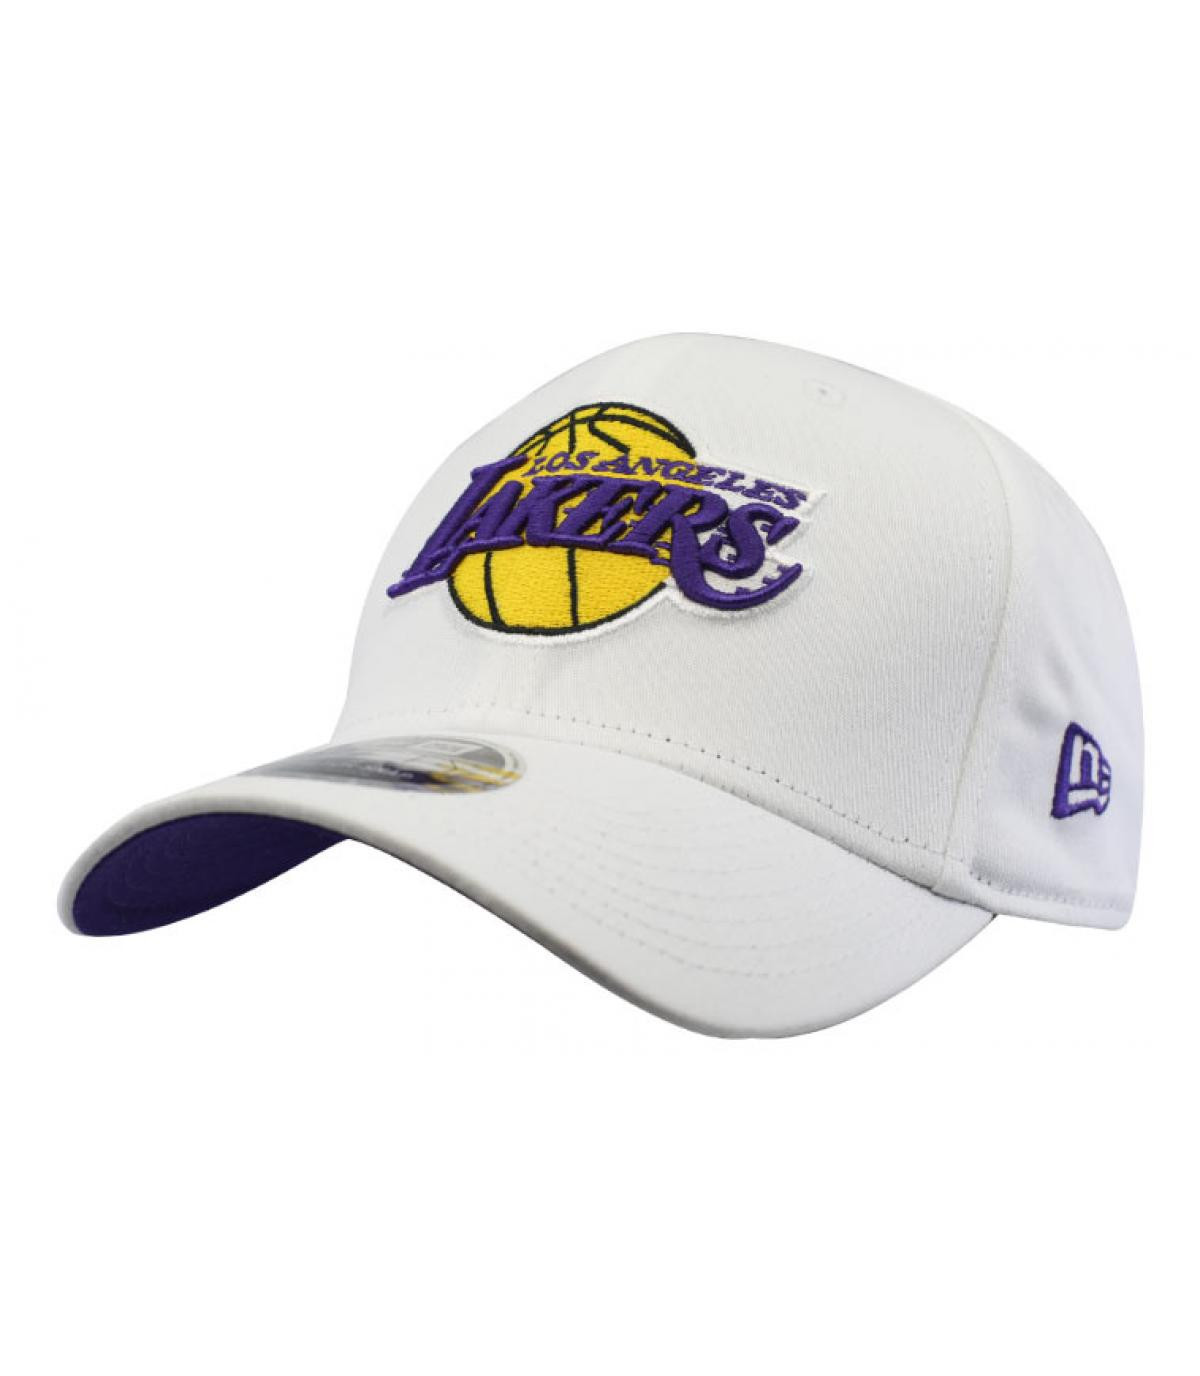 Détails Stretch Snap 9Fifty Lakers - image 2